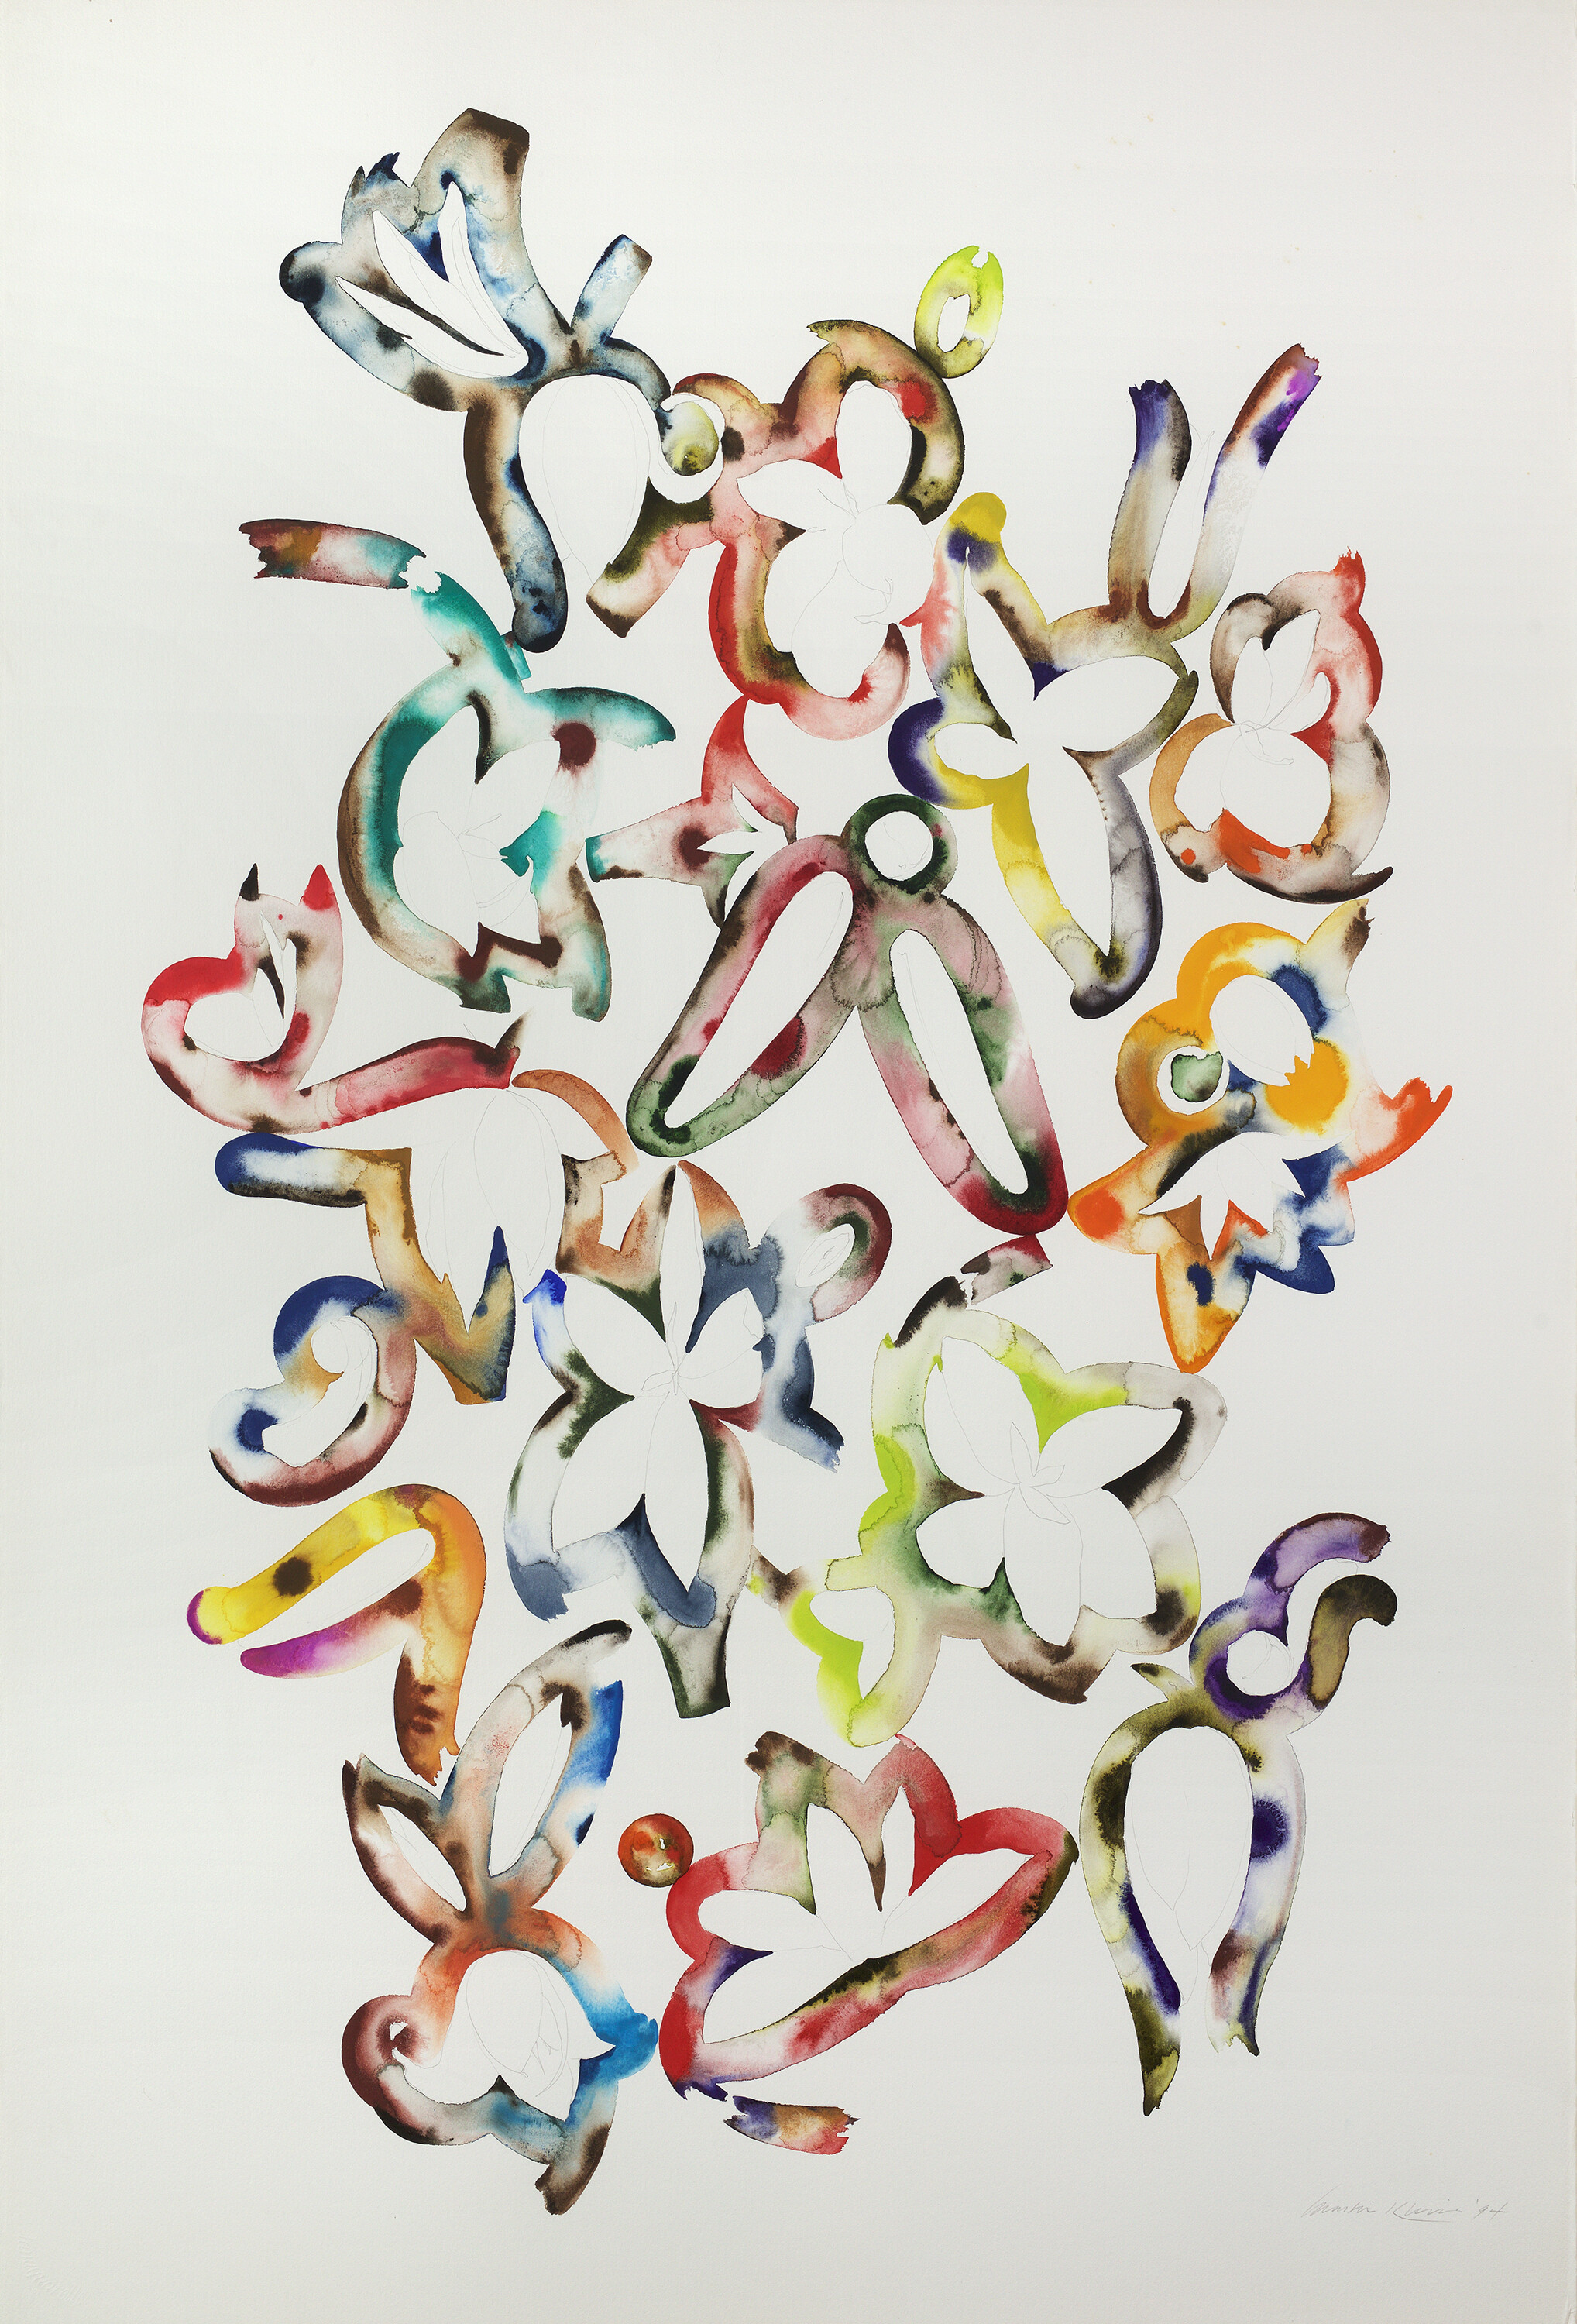 Martin Kline, 1994, Pencil, watercolor and gouache on paper, 60 x 40 1/4 inches